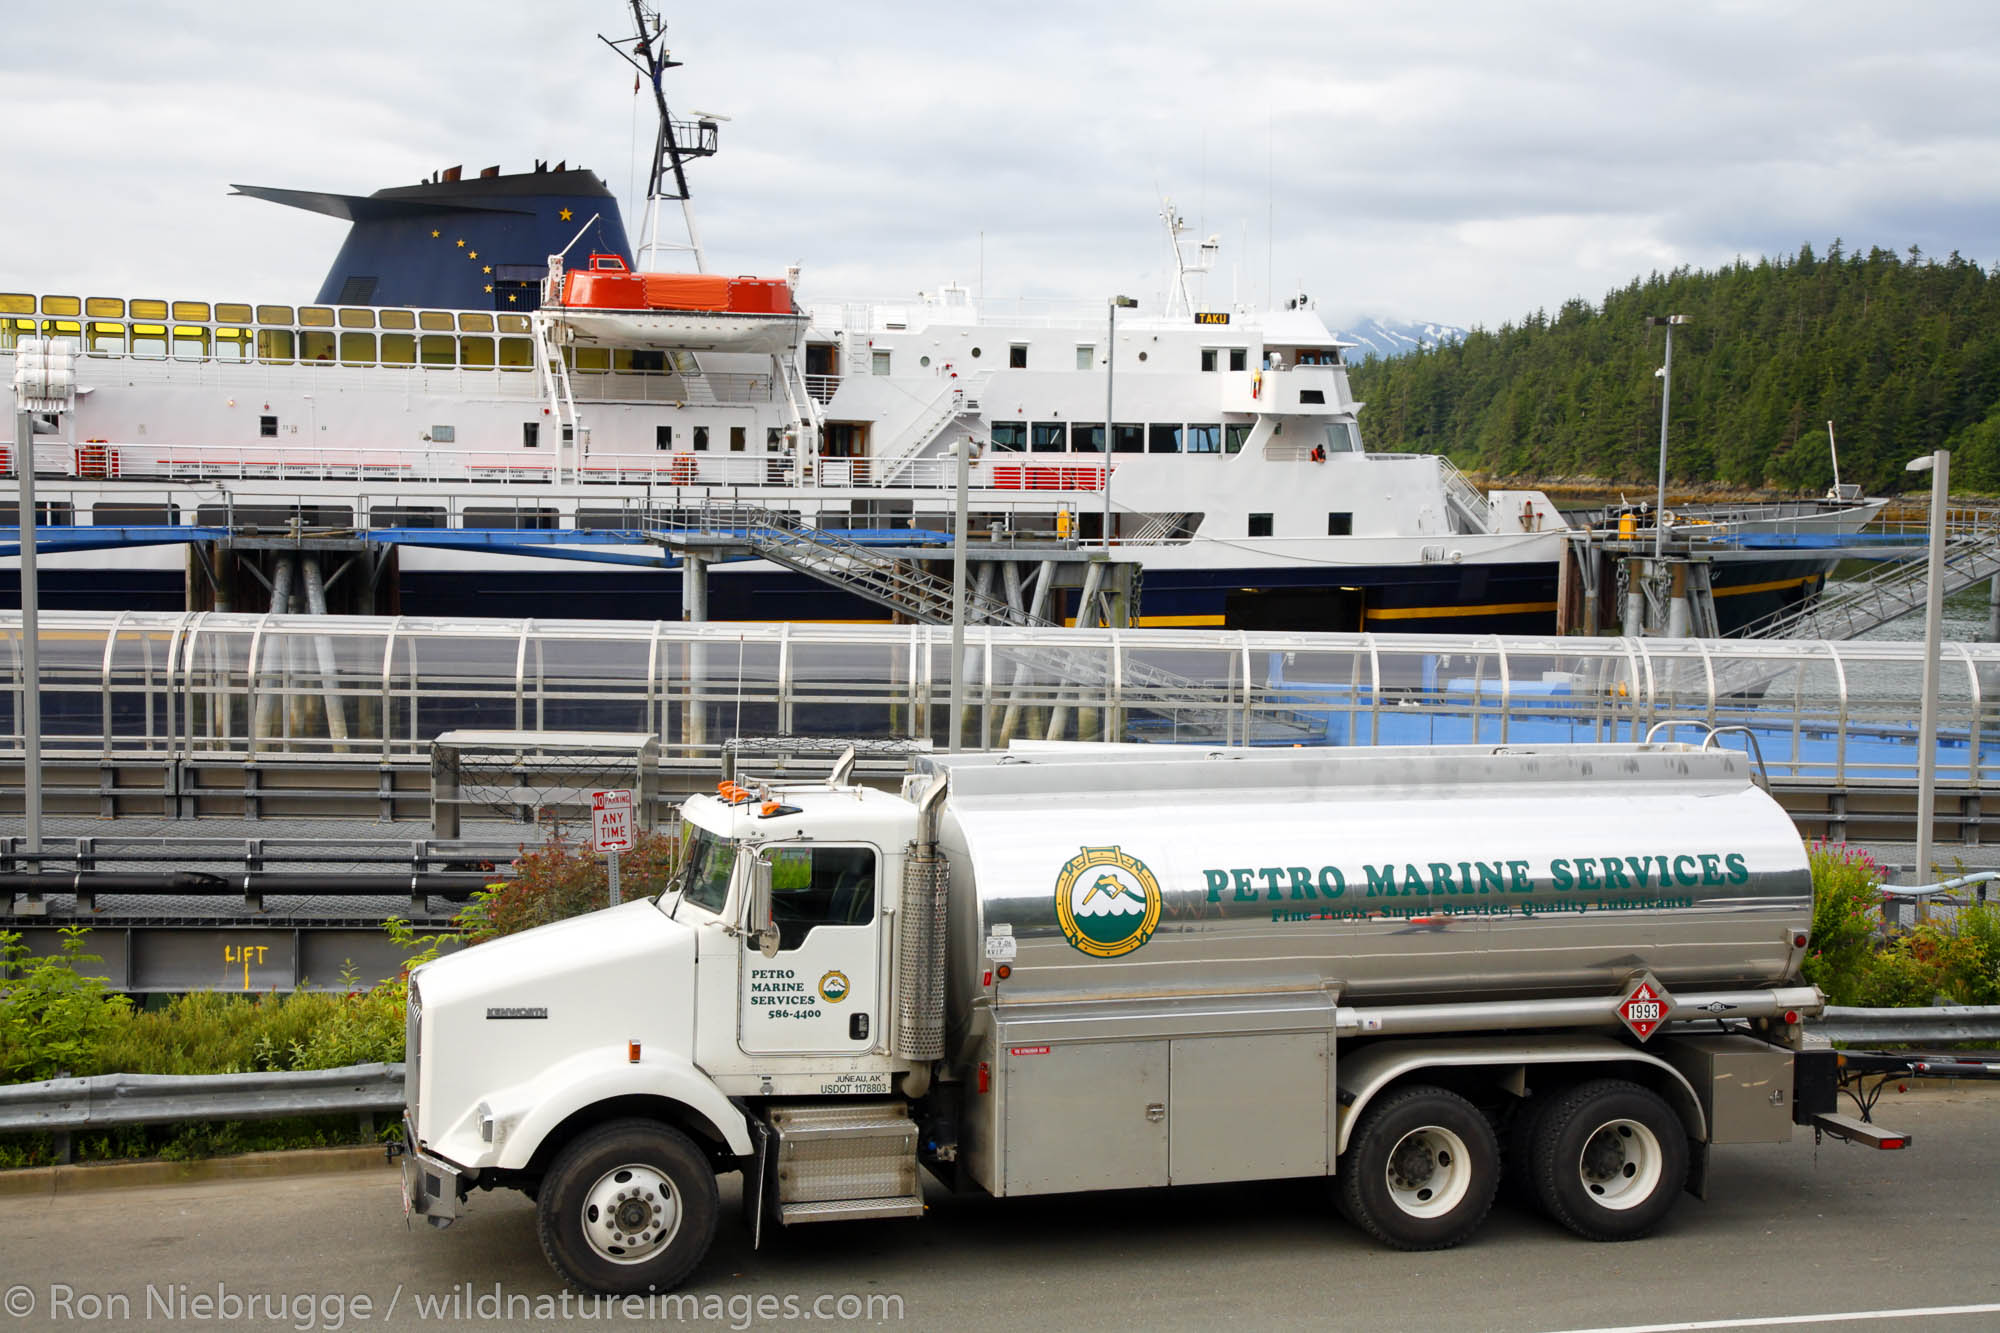 Petro Marine Services truck delivering fuel to the Alaska State Ferry, Juneau, Alaska.